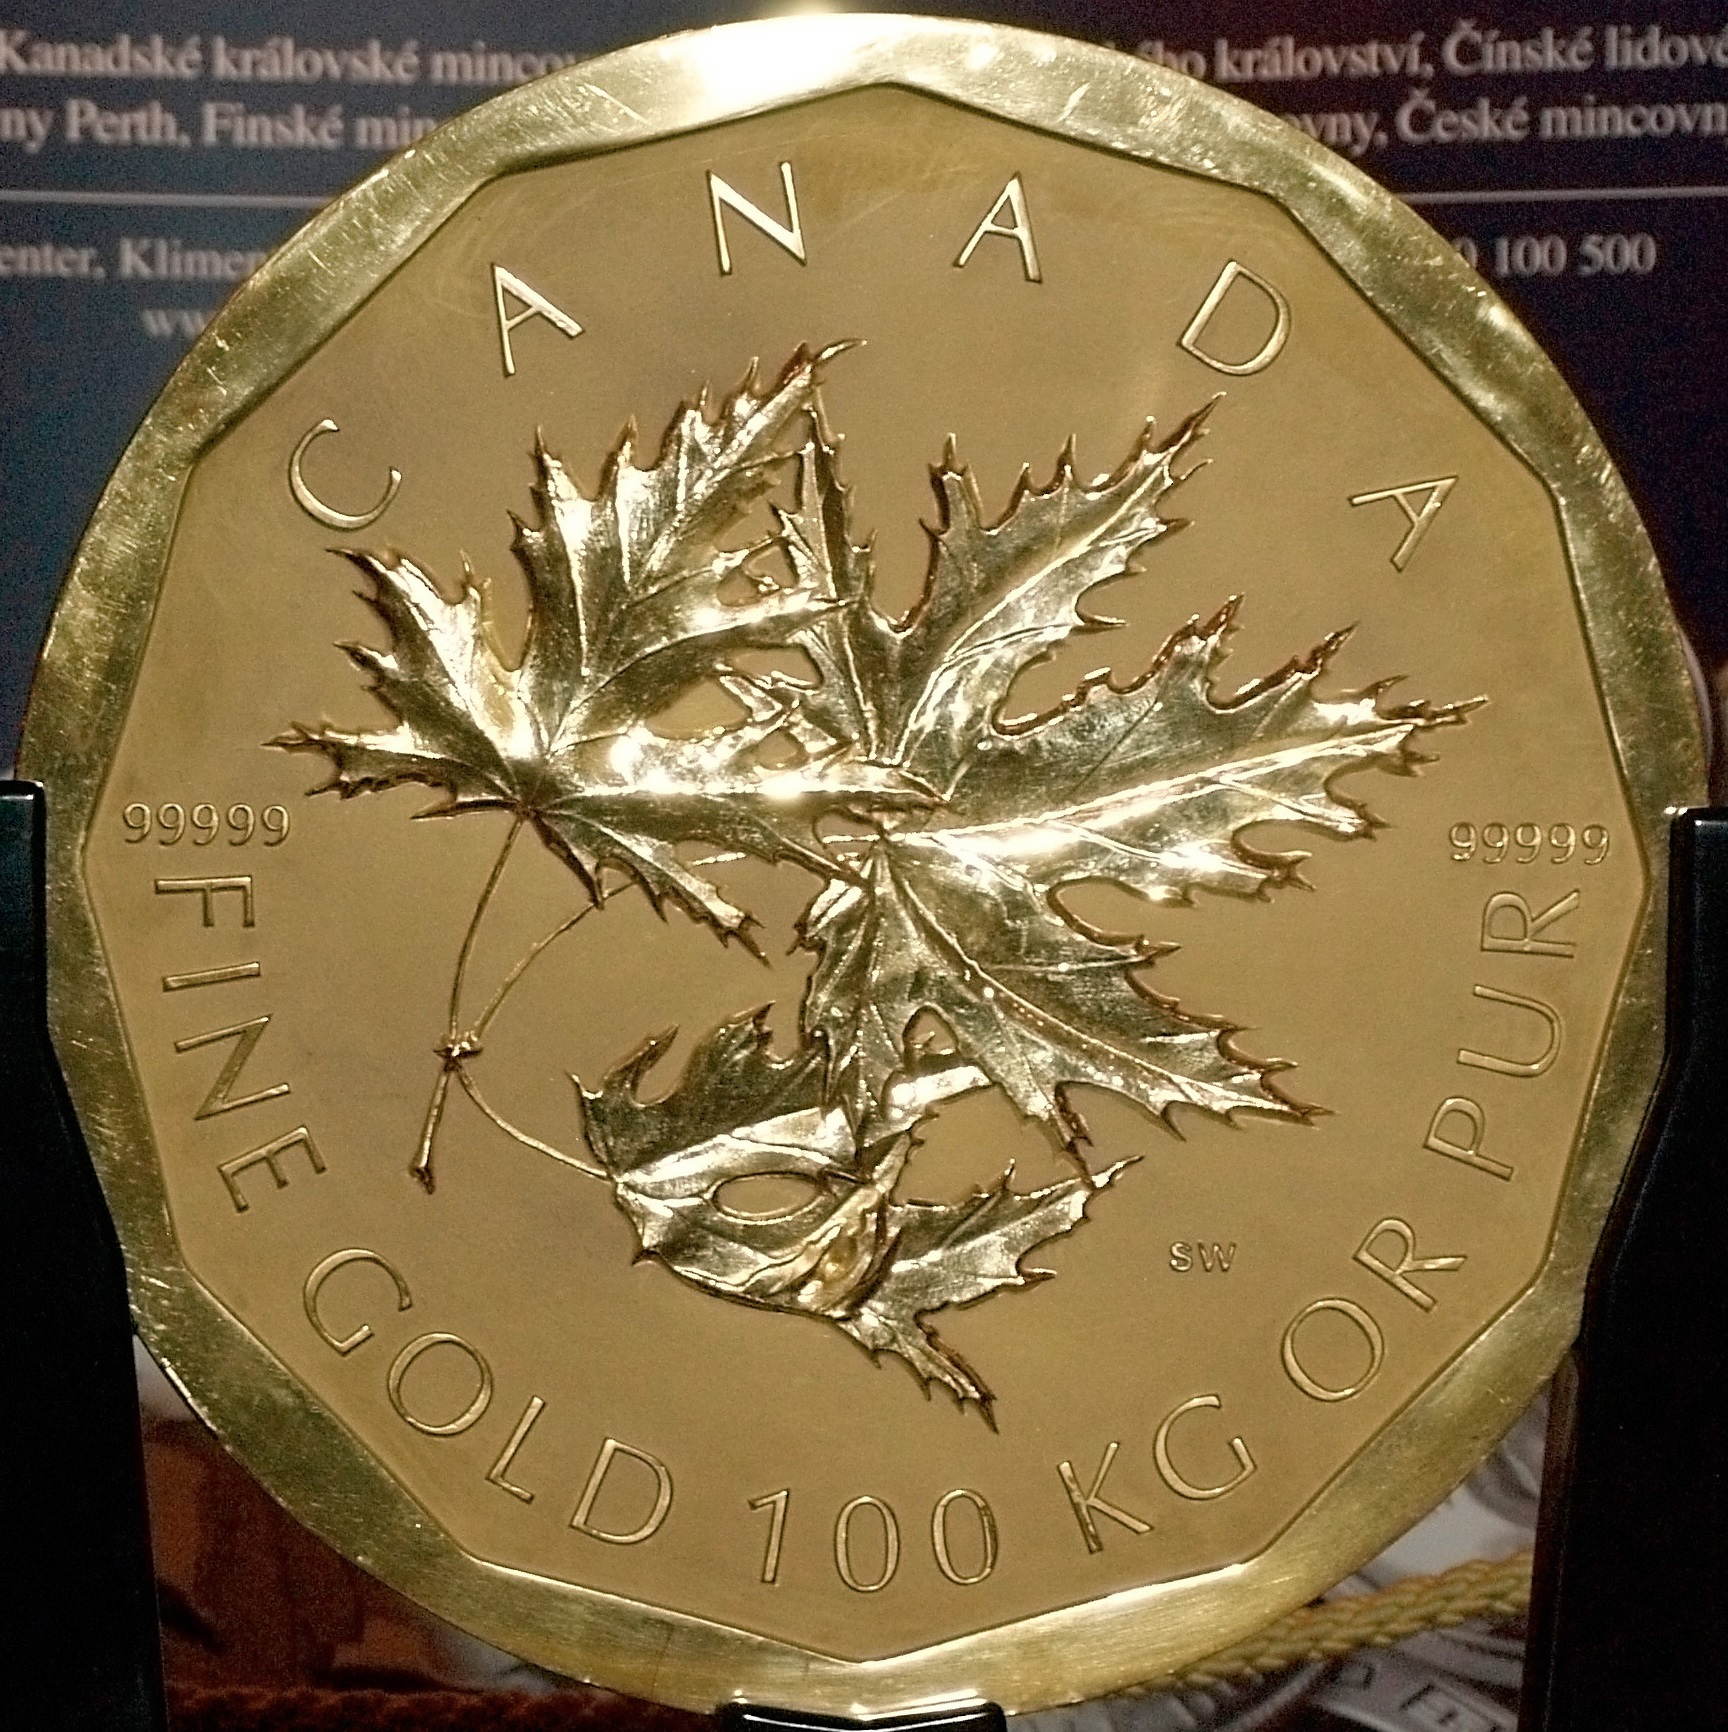 Canadian 1 000 000 Dollar Coin Currency Wiki Fandom Powered By Wikia